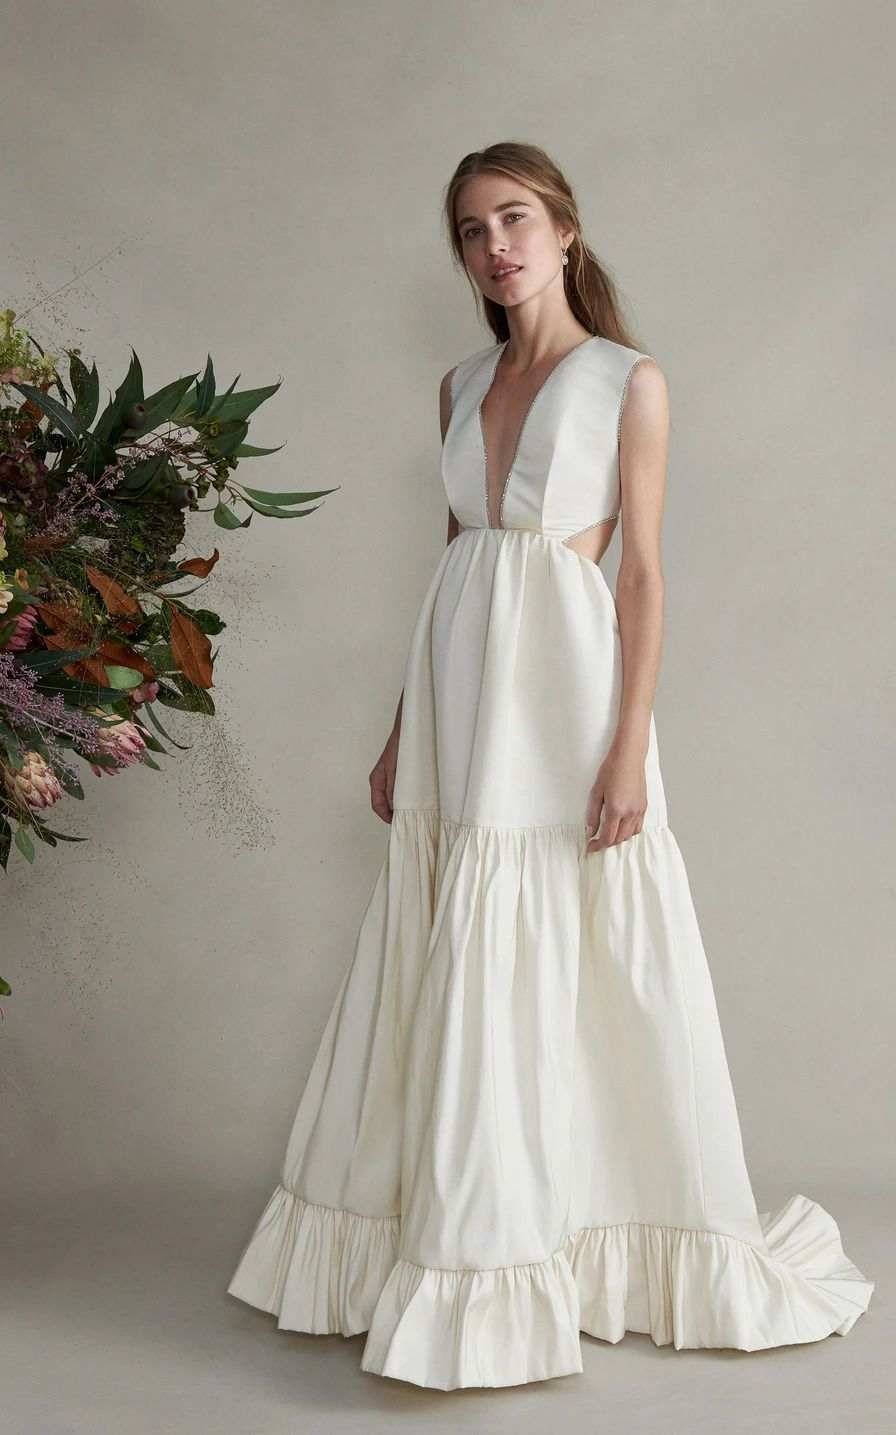 Markarian Guinevere gown featuring a plunging neckline